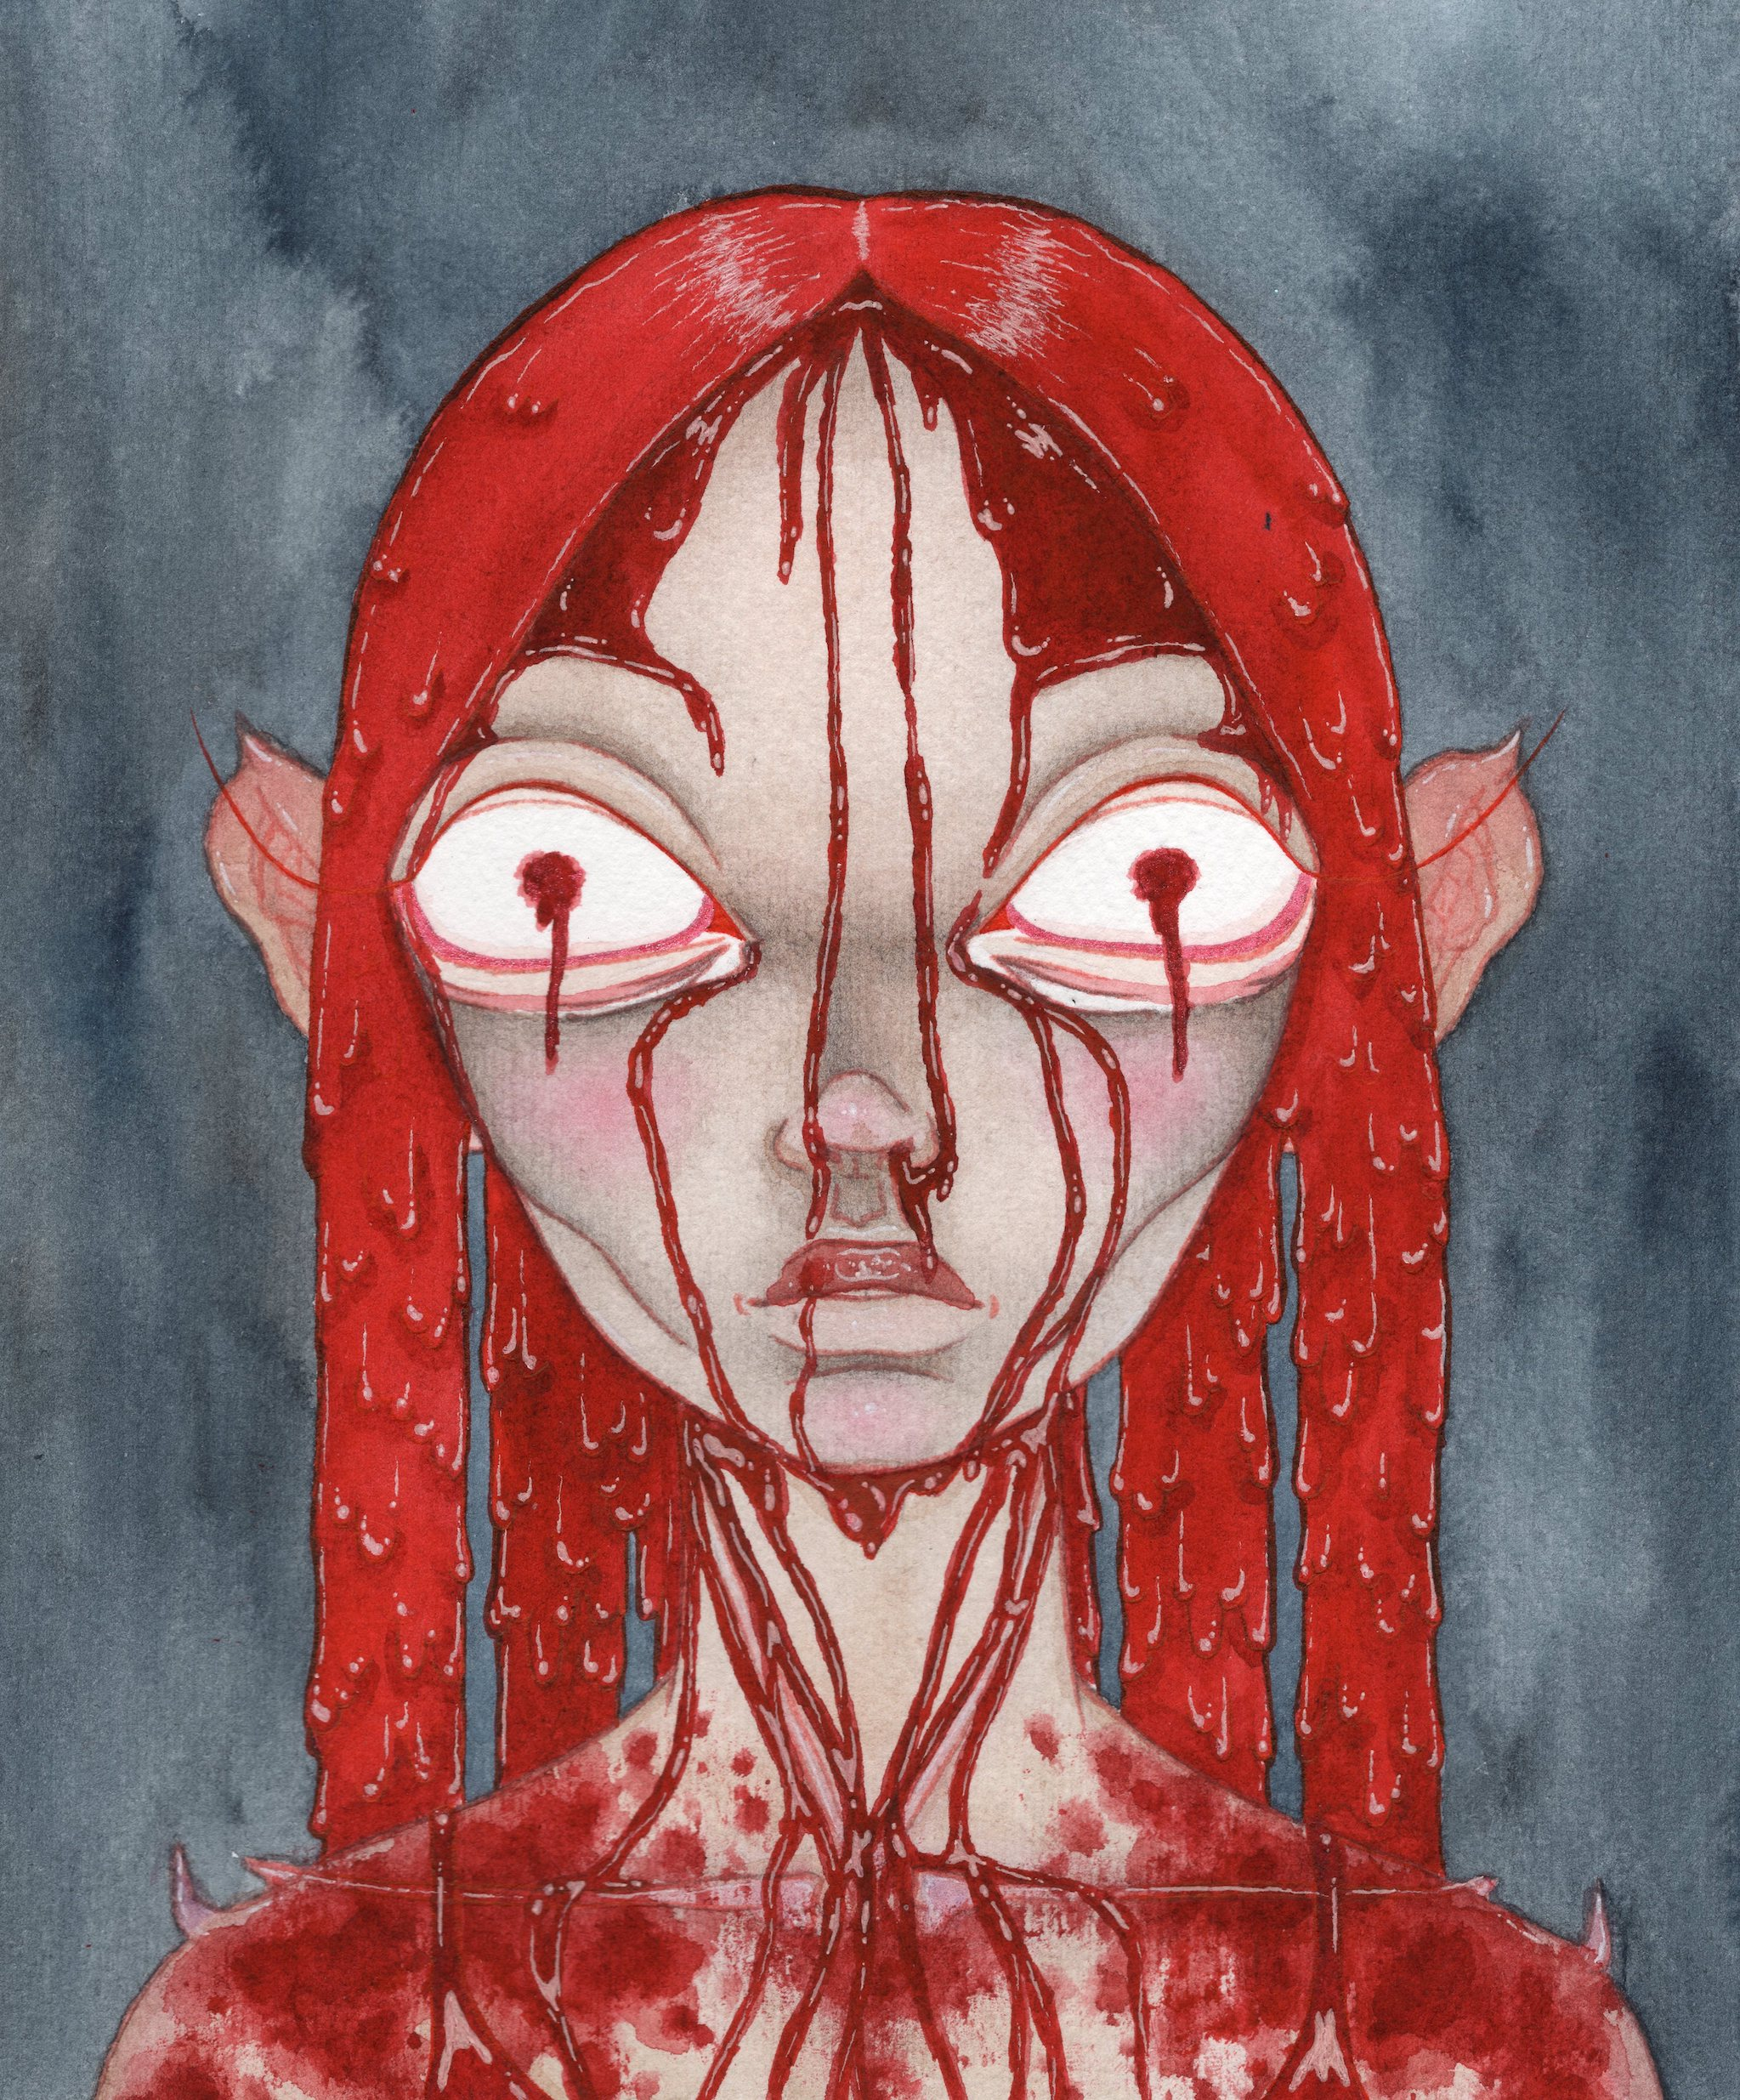 'Carrie' Print